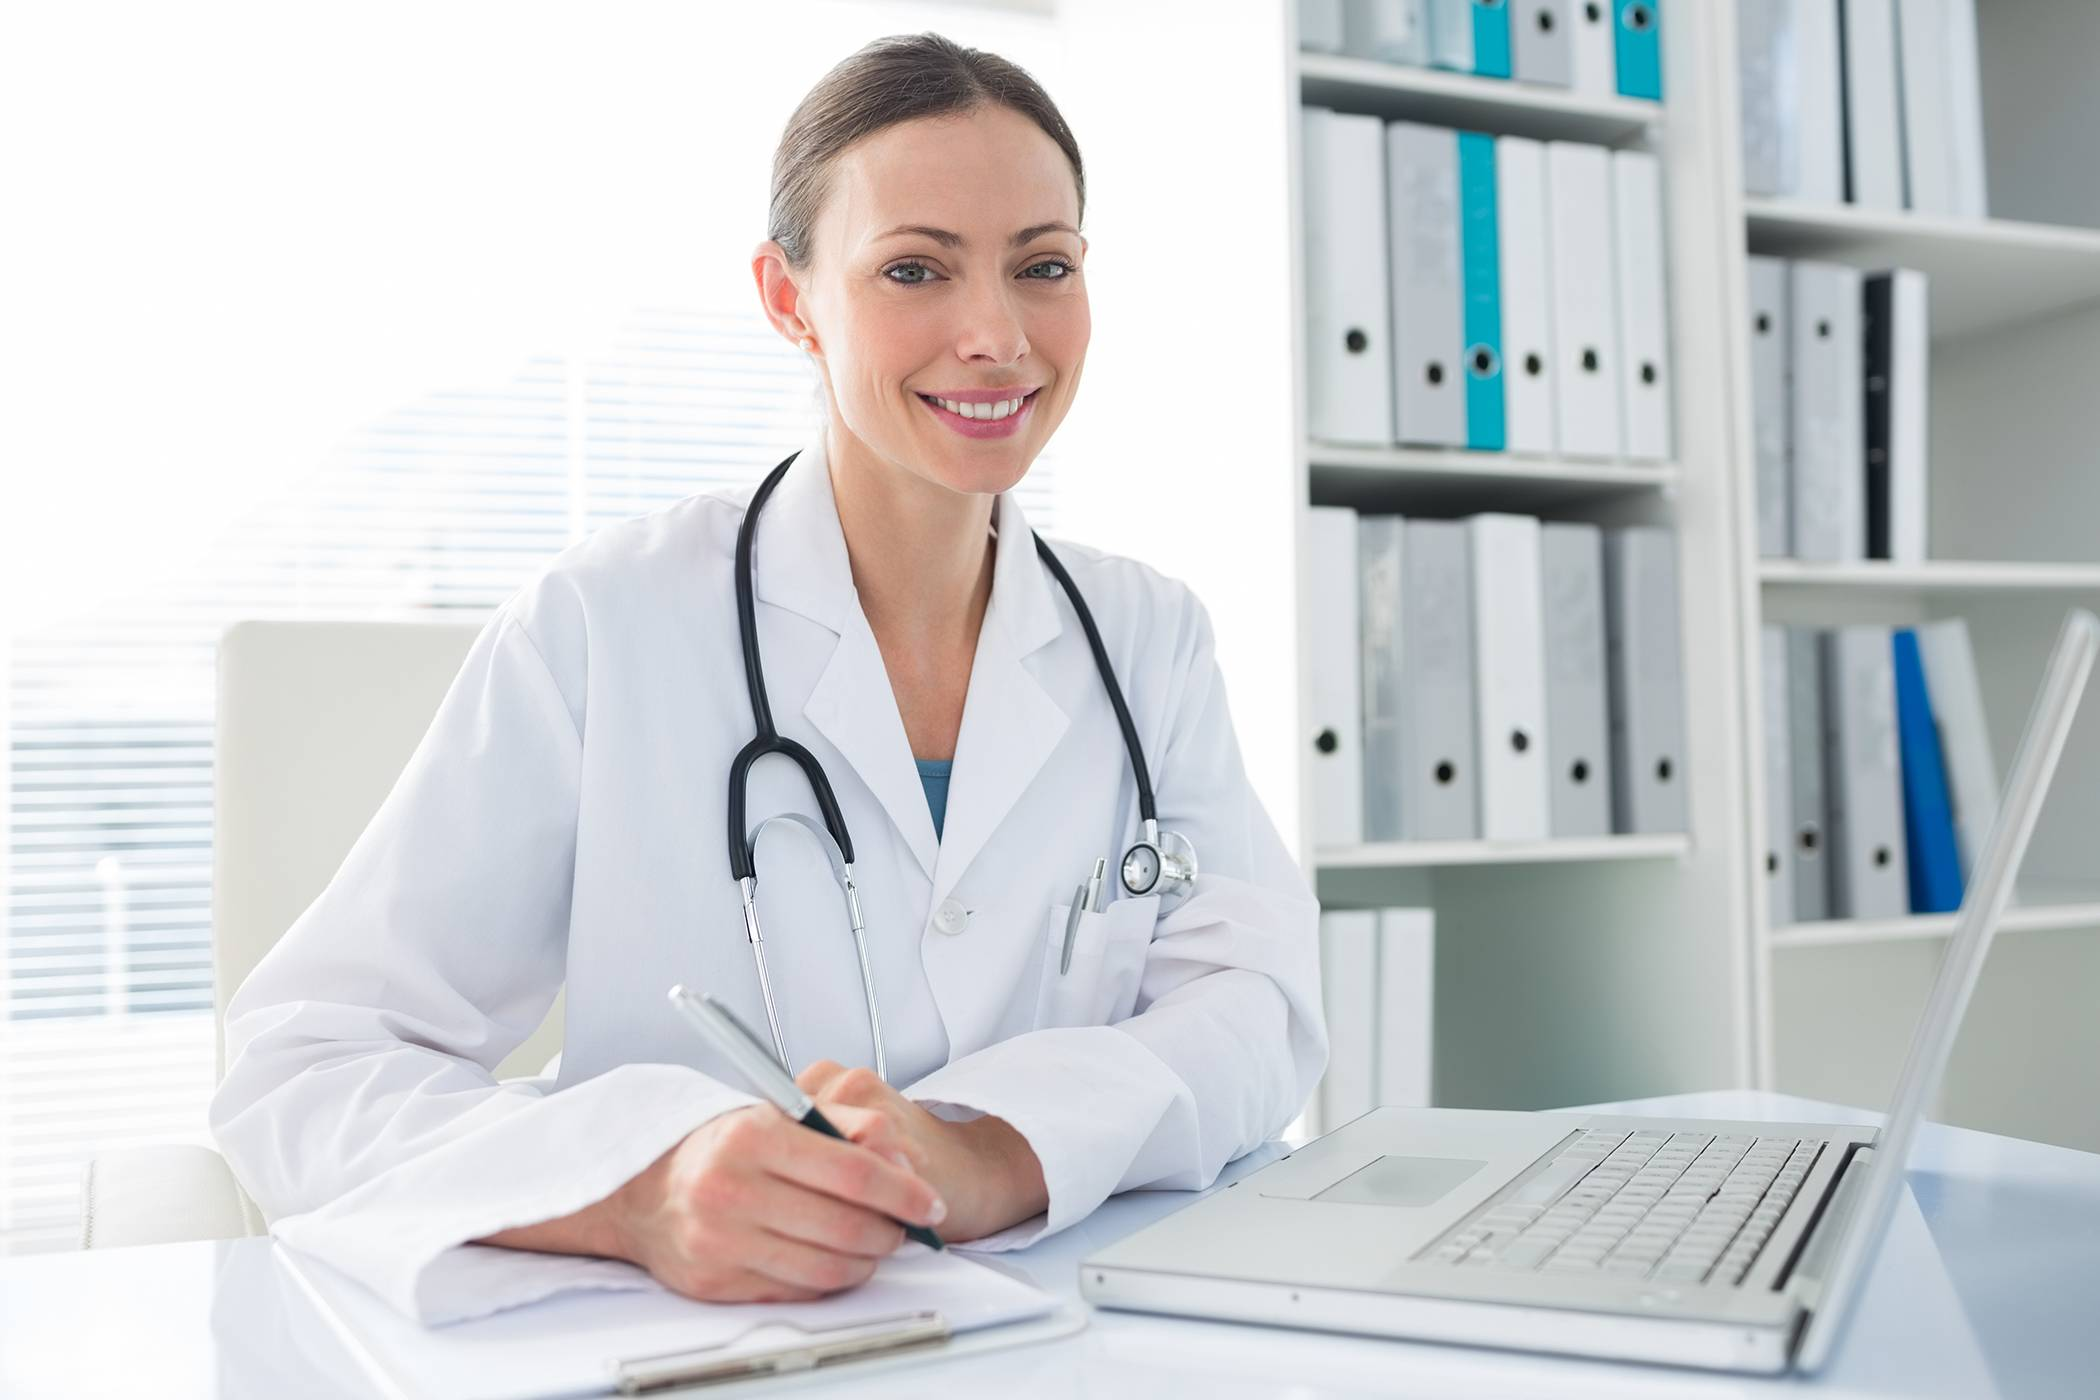 Beautiful female doctor with laptop and clipboard sitting at desk in clinic